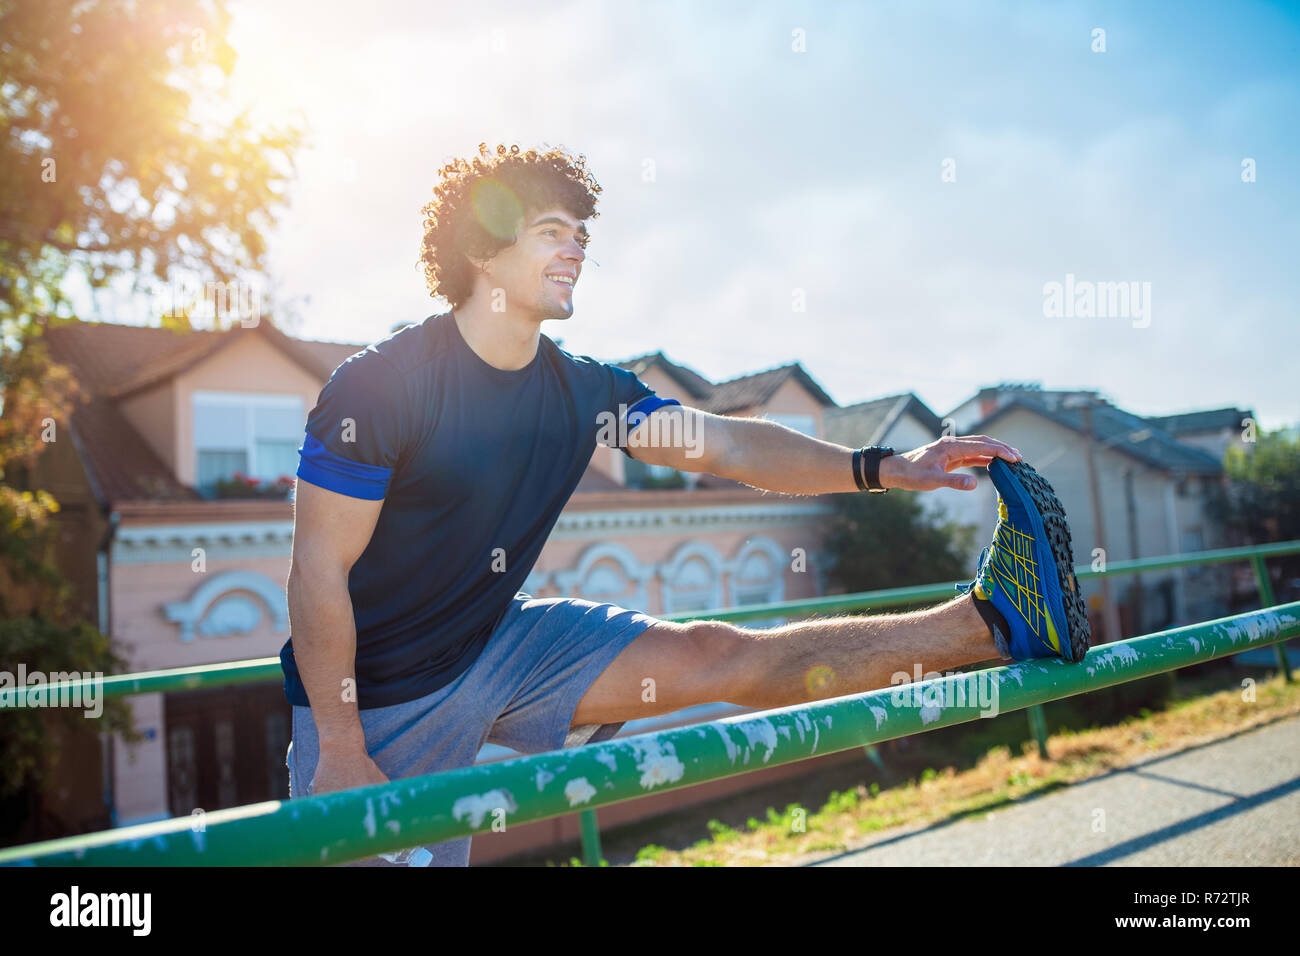 Smiling fitness man doing stretching exercise, preparing for workout in the park Stock Photo